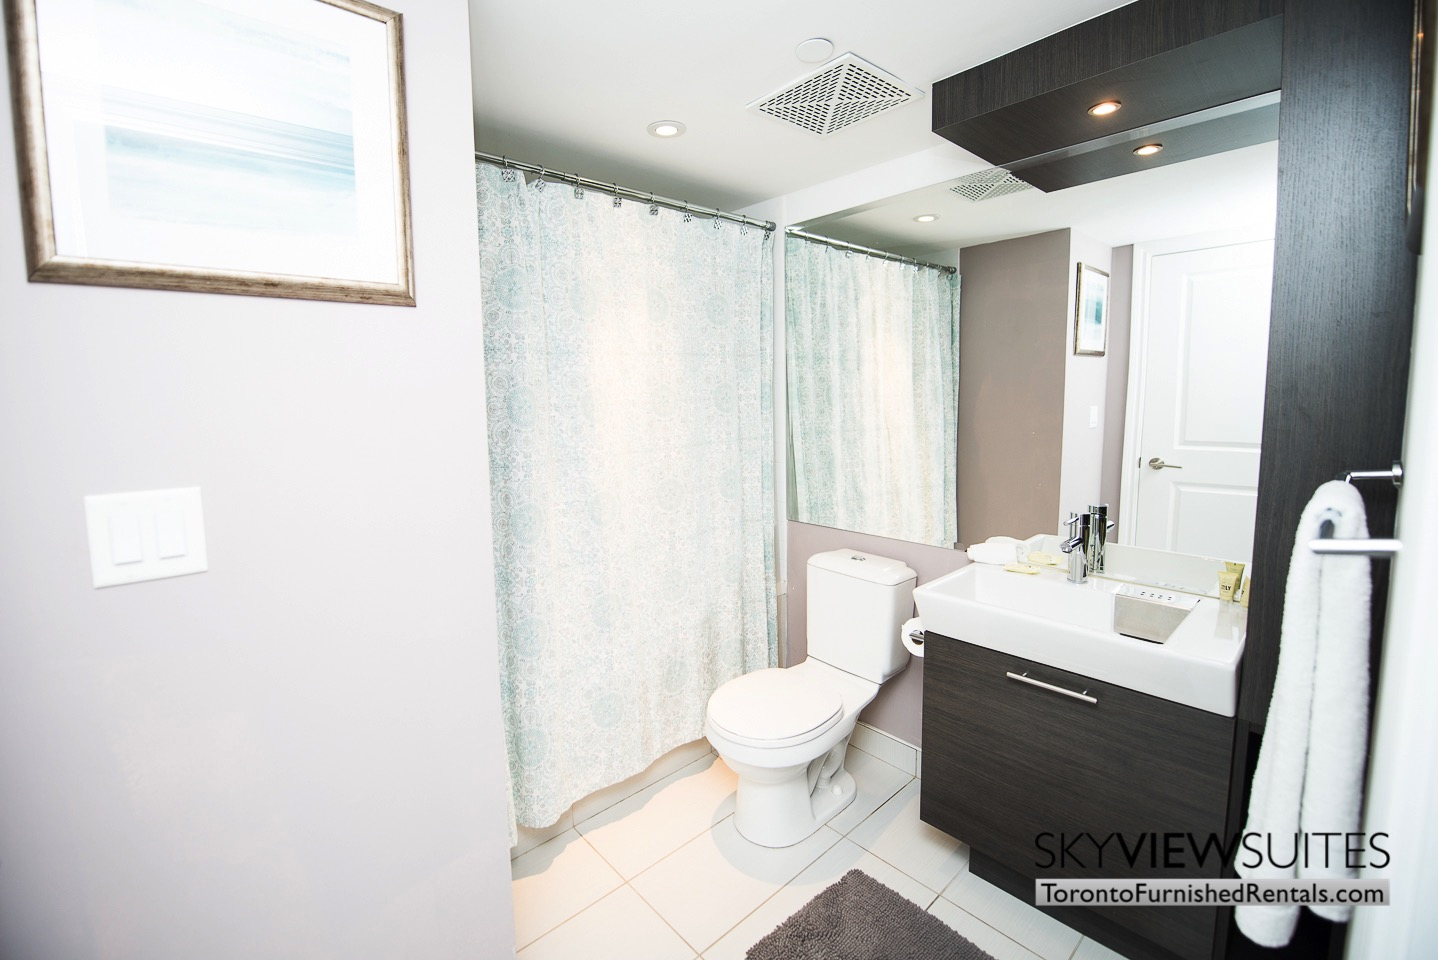 furnished-rentals-toronto-bathroom-college